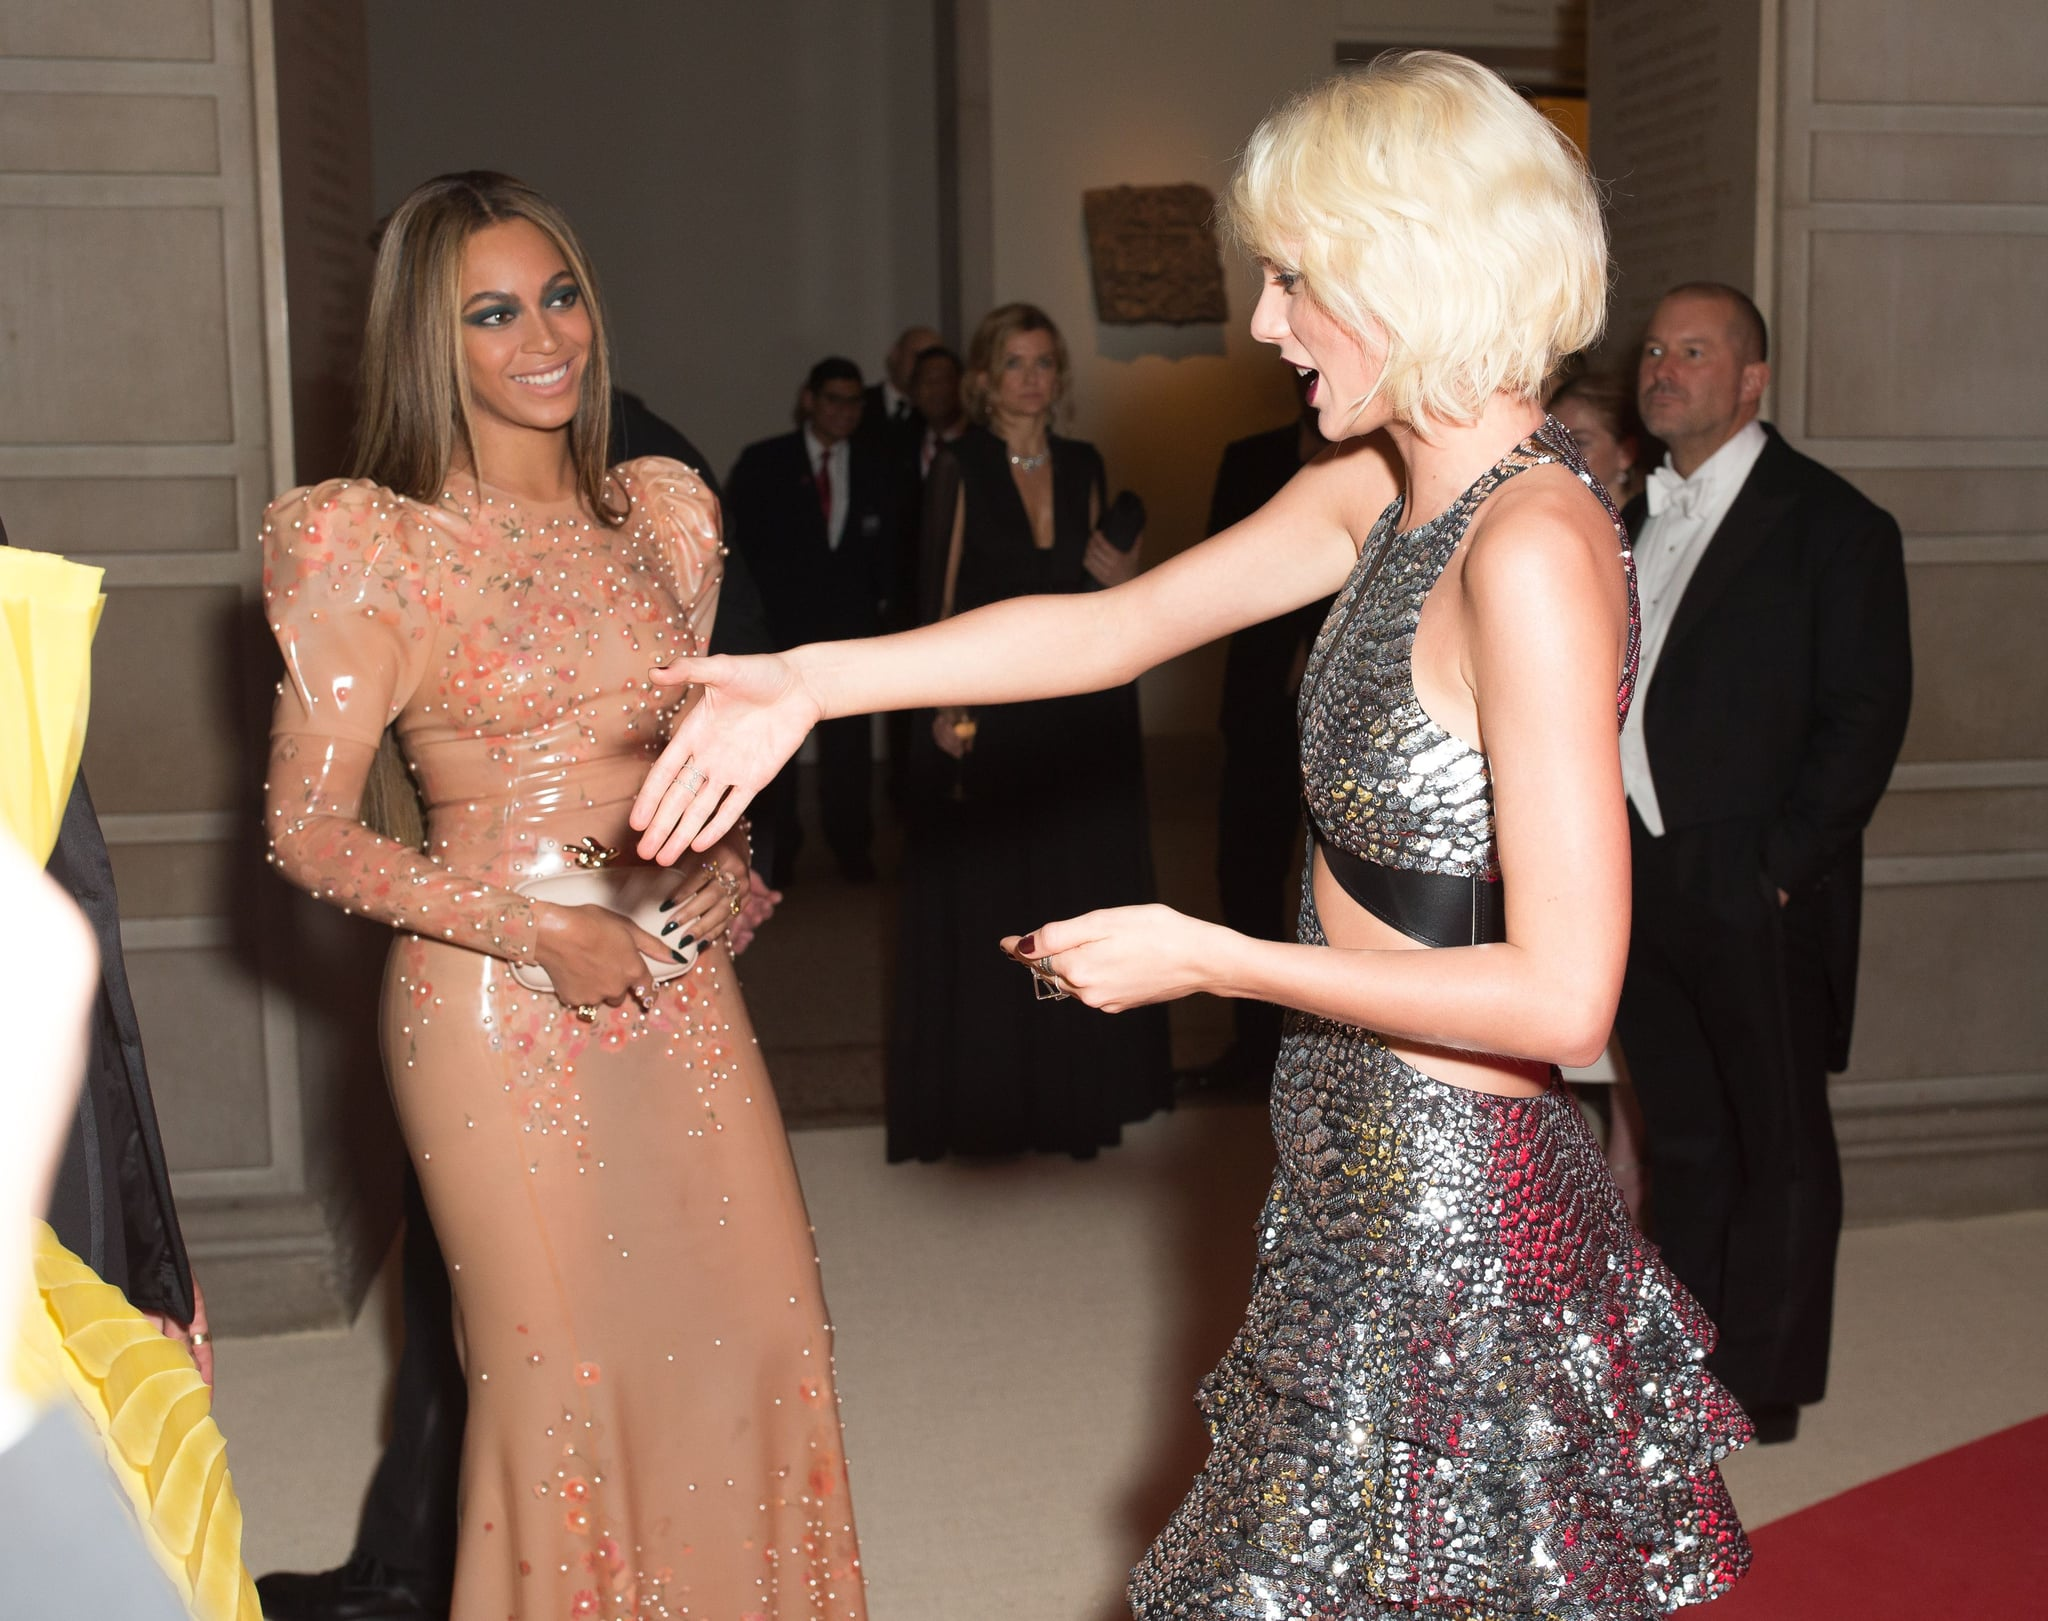 Pictured Beyonce Knowles And Taylor Swift Get Ready For This Year S Met Gala By Looking Back At The Best Moments From 2016 Popsugar Celebrity Photo 11